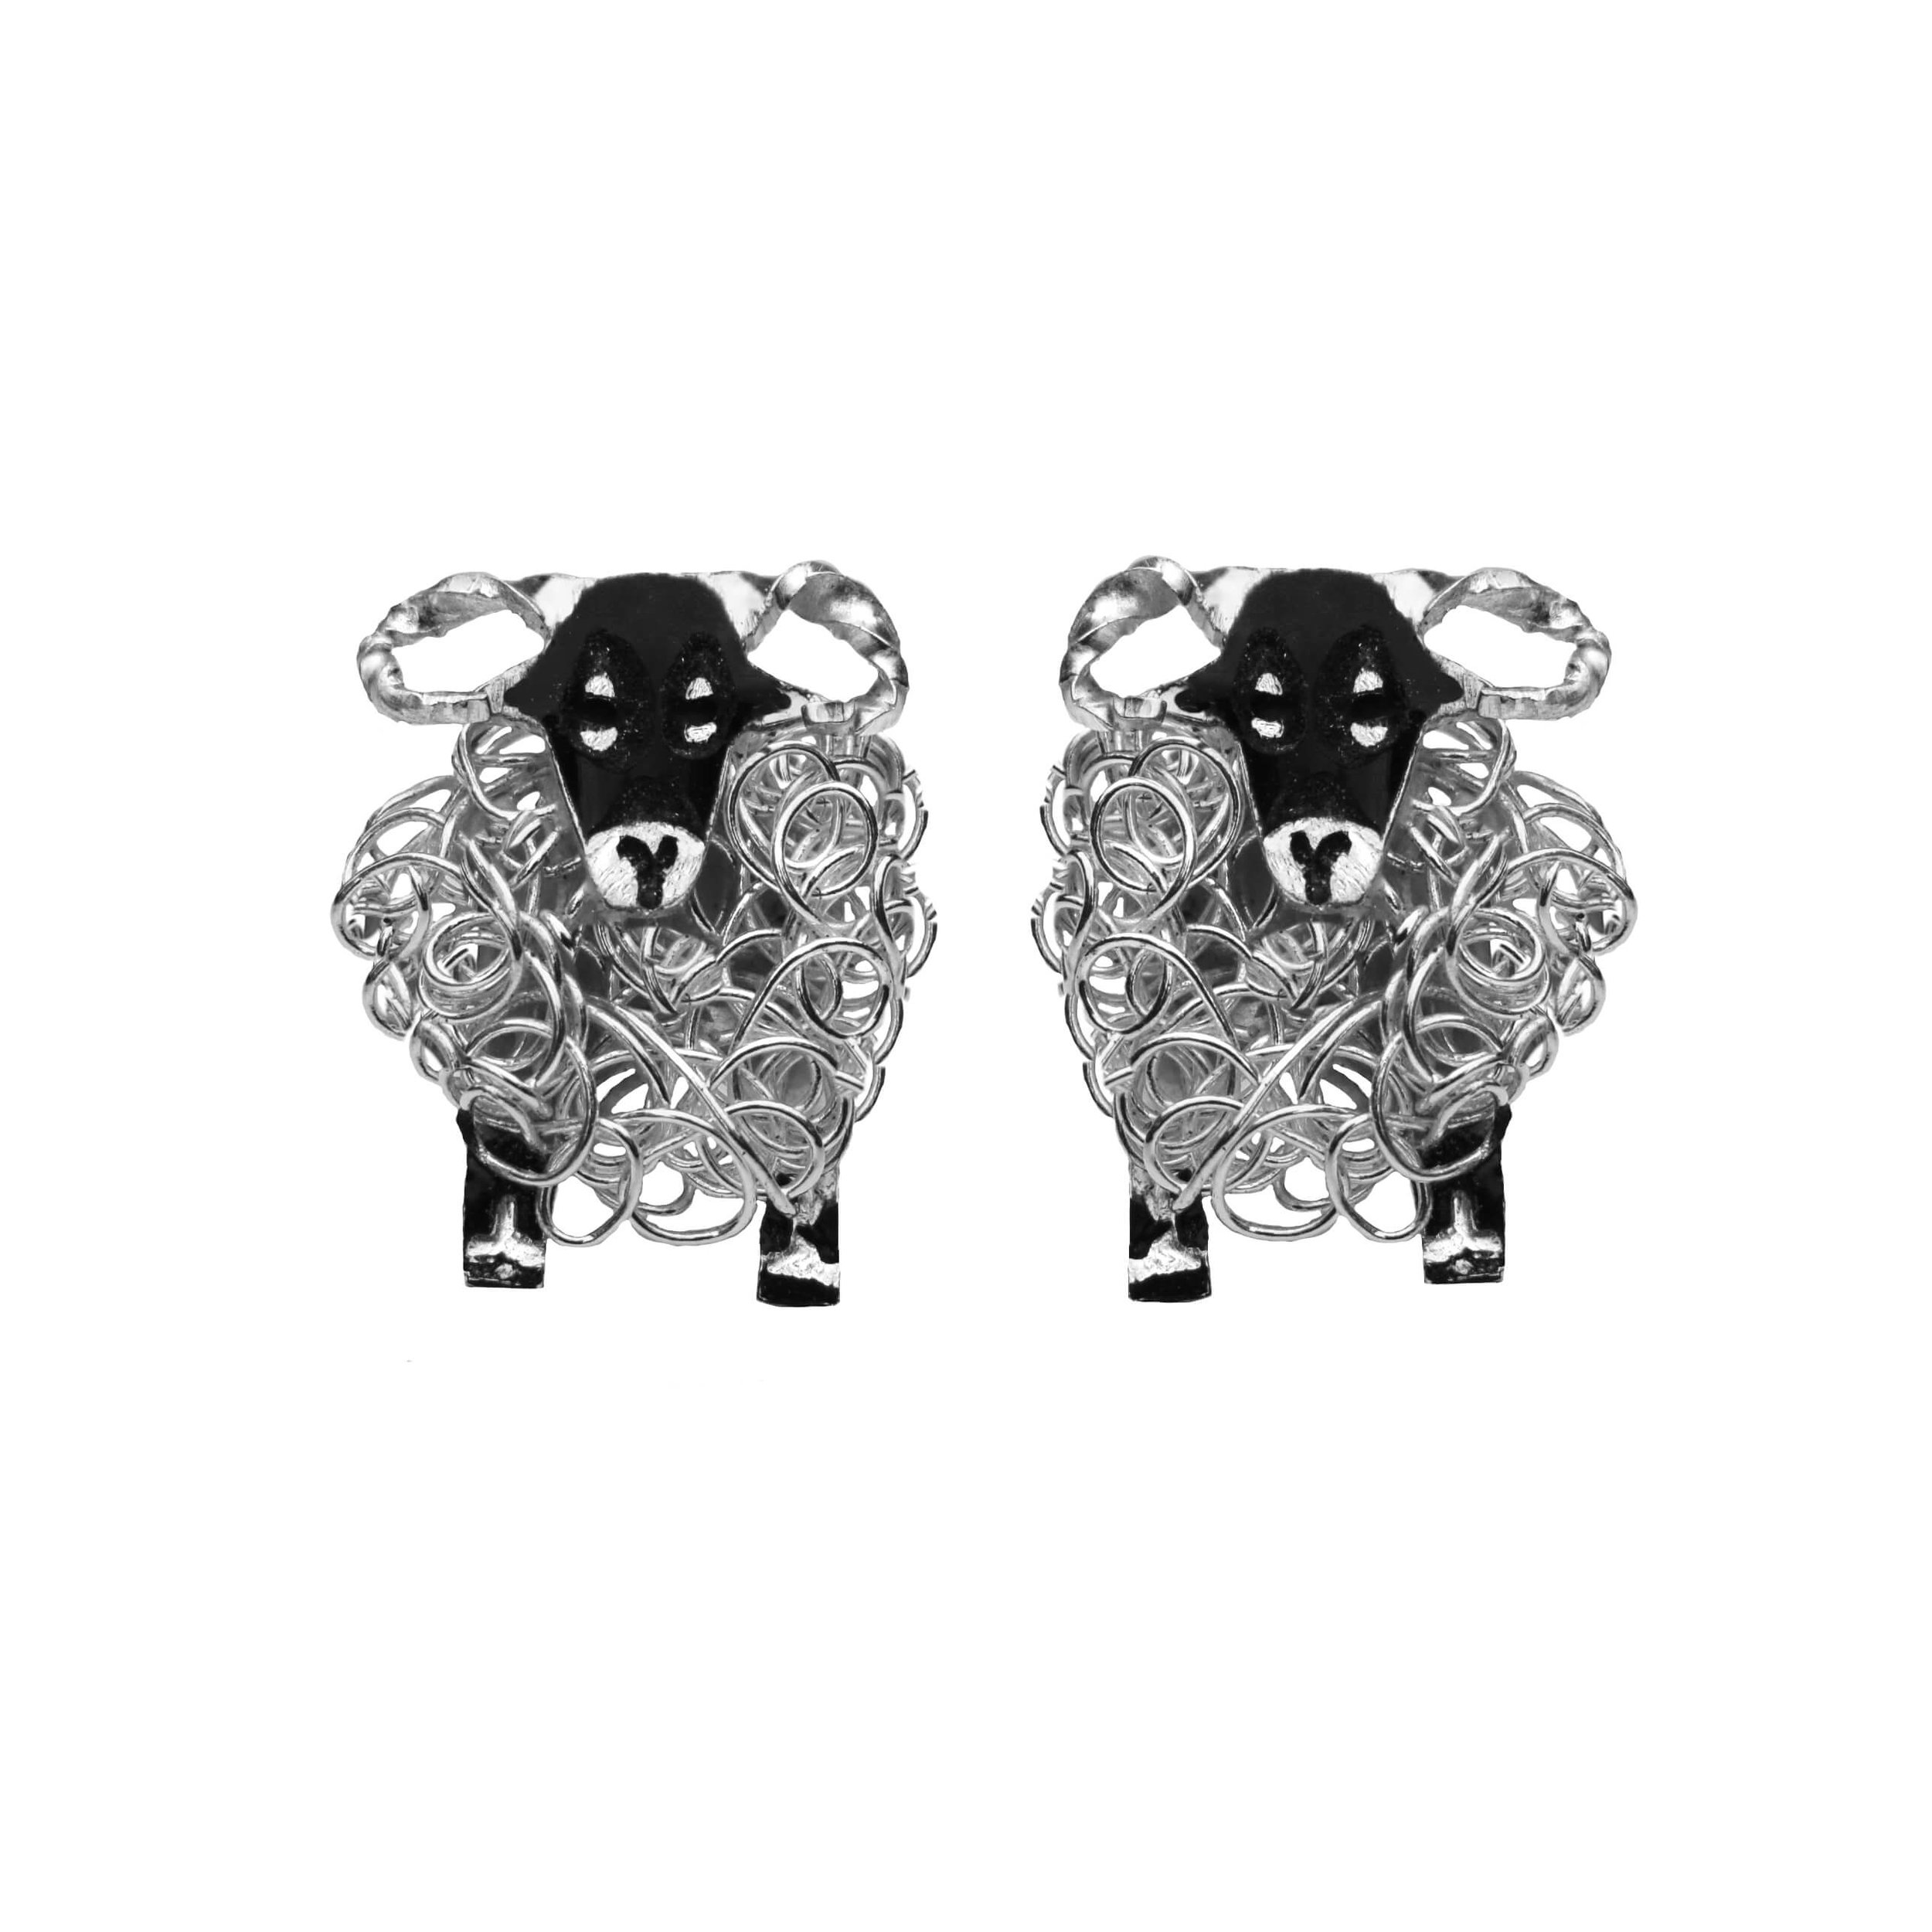 White Sheep Stud Earrings - Sterling Silver